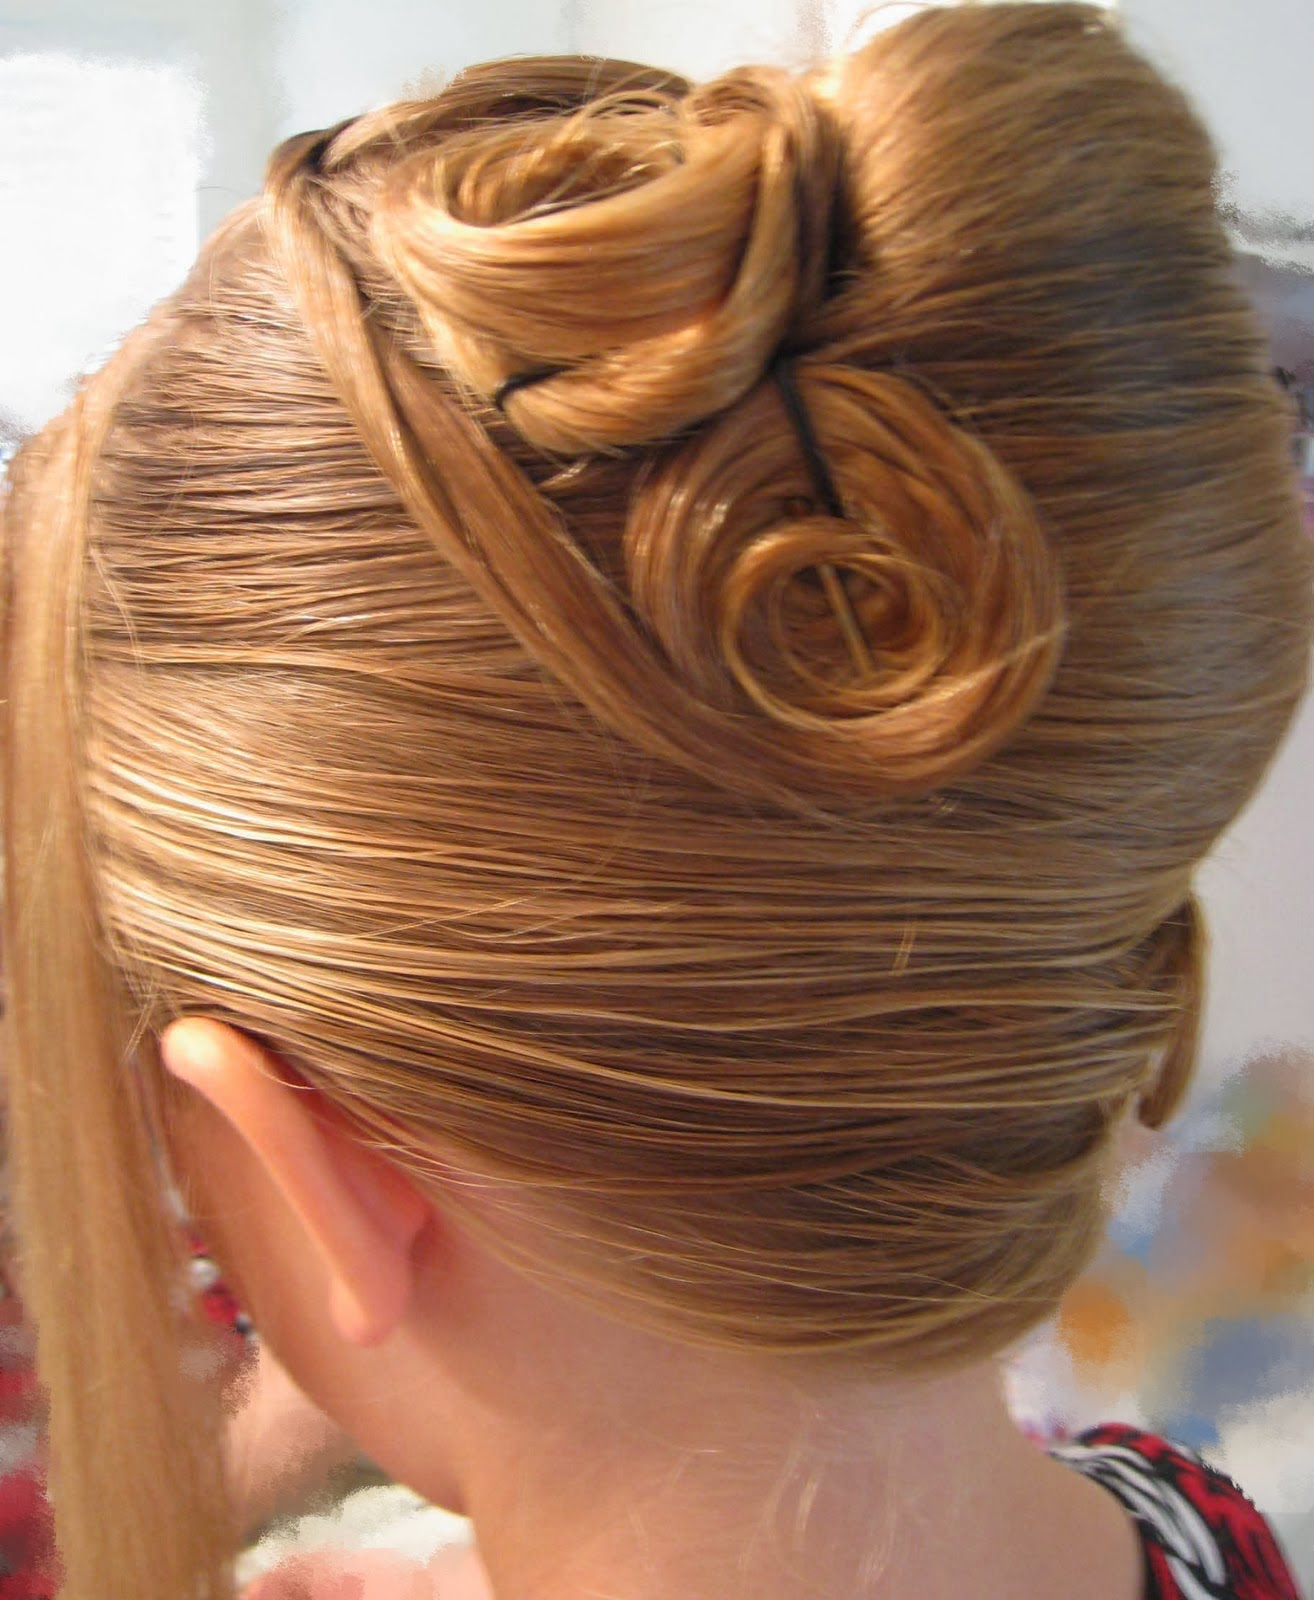 Easy Prom Hairstyles - Top and Trend Hairstyle